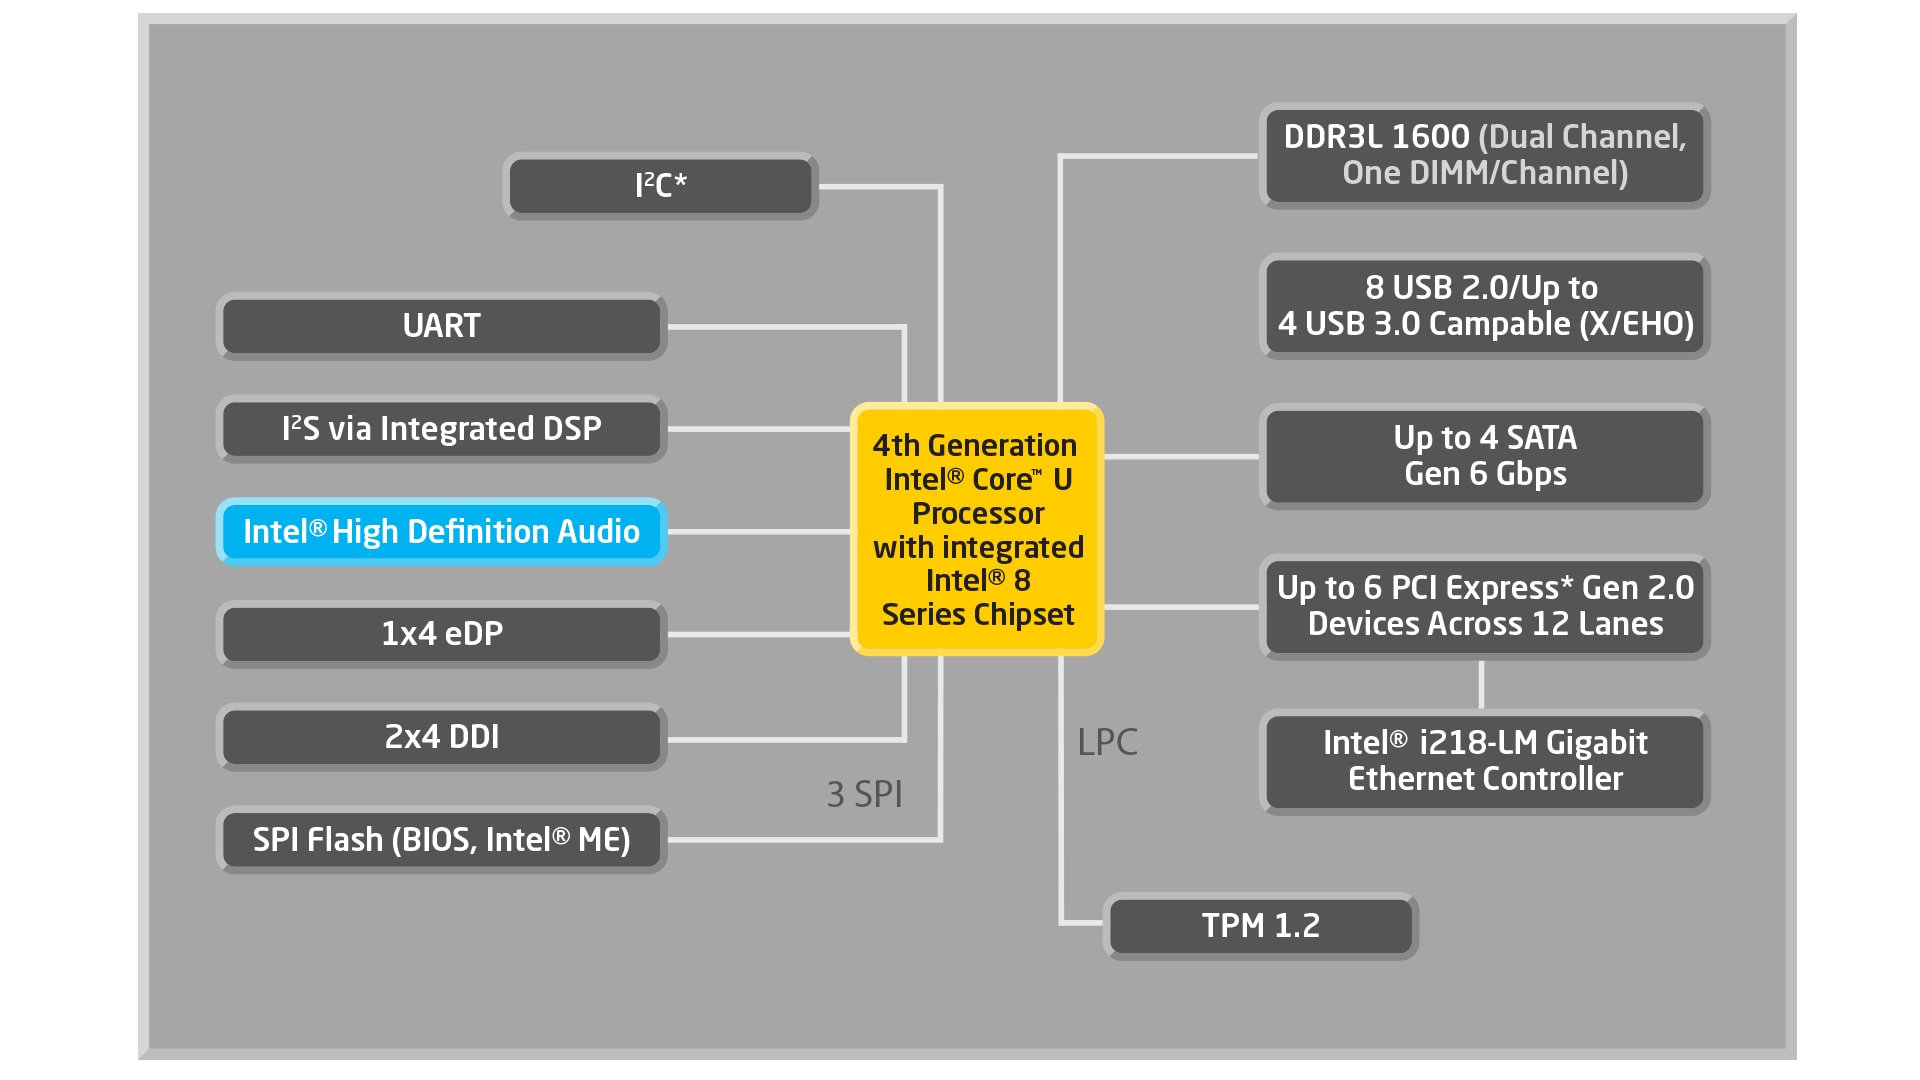 4th Generation Intel® Core™ Processor with Intel® 8 Series Chipset: Block Diagram